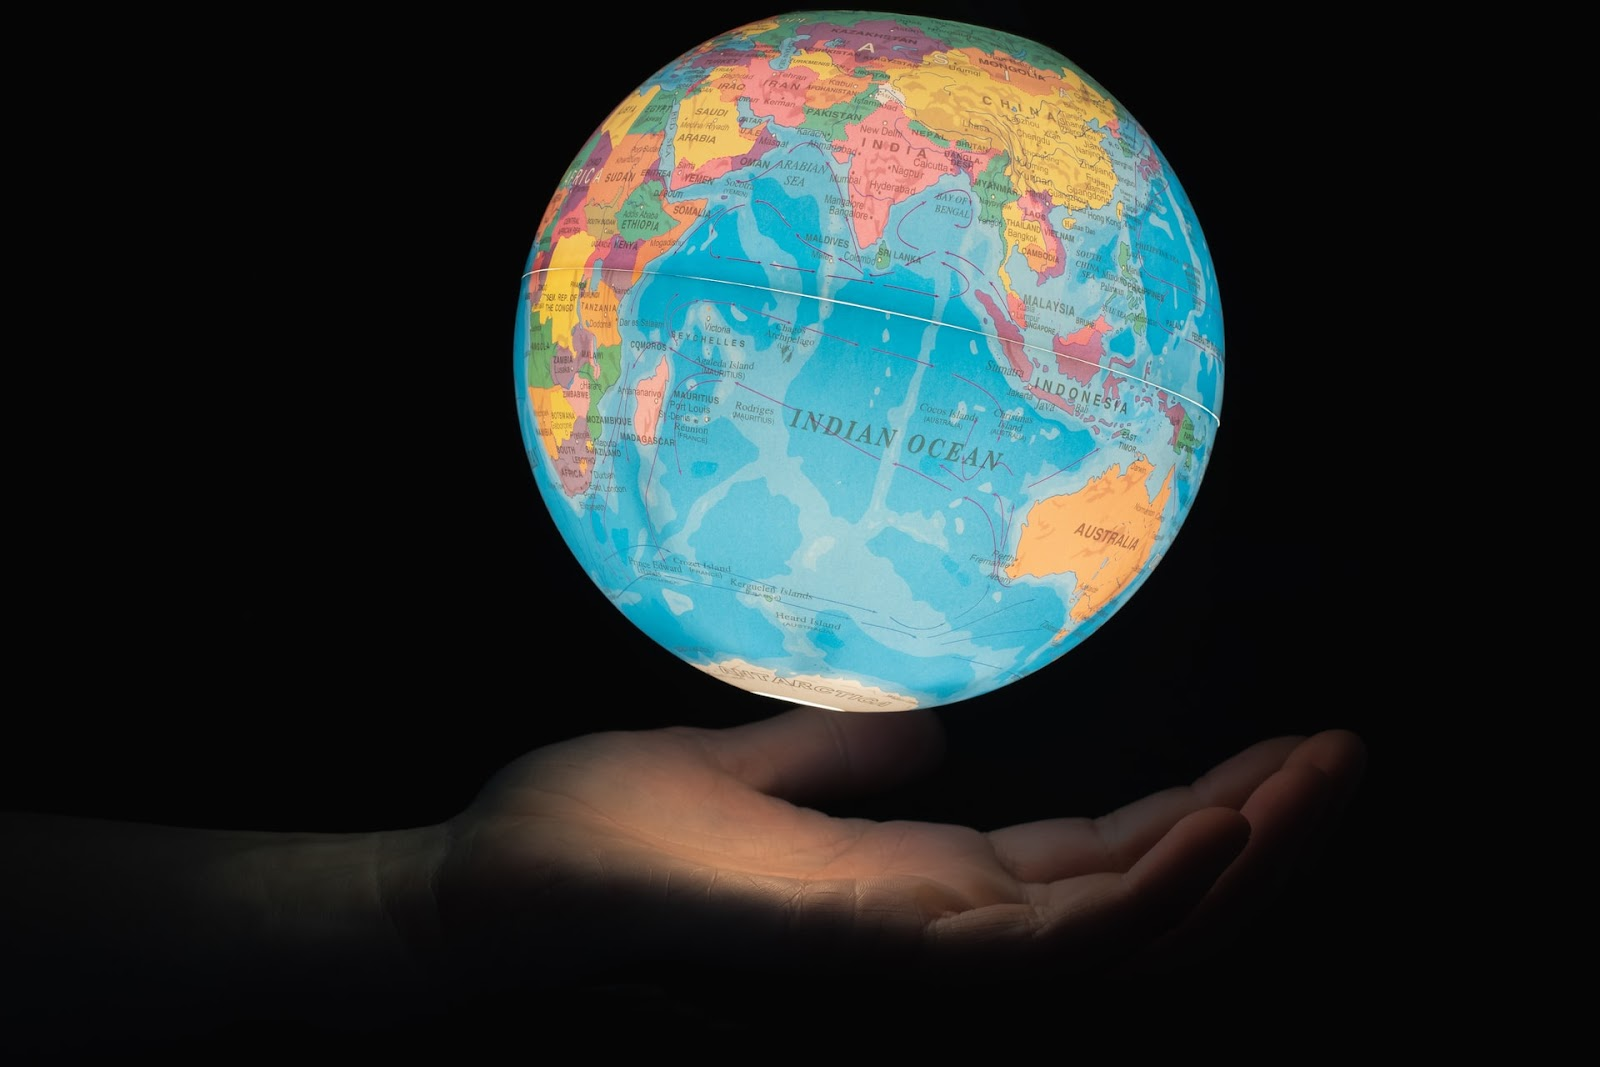 Hand holding an earth globe for Earth Day